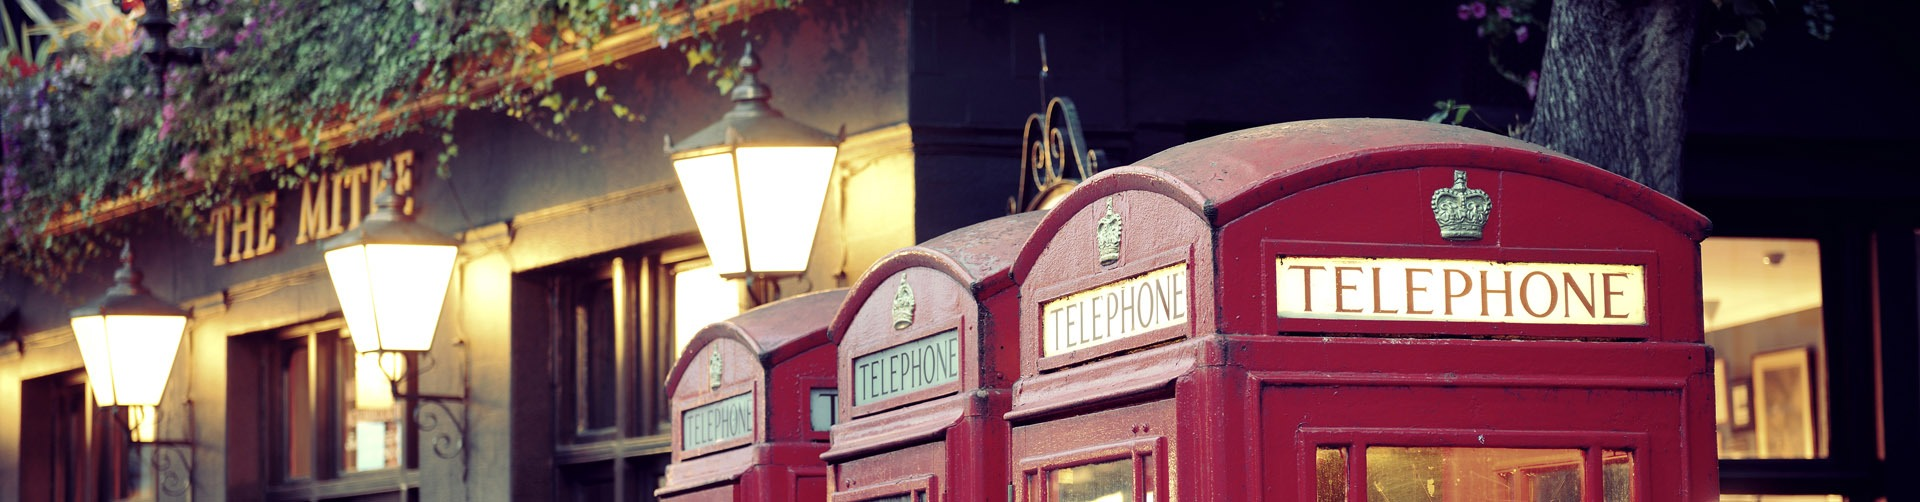 LONDON, UK – SEP 27: London Street view with telephone box on Se